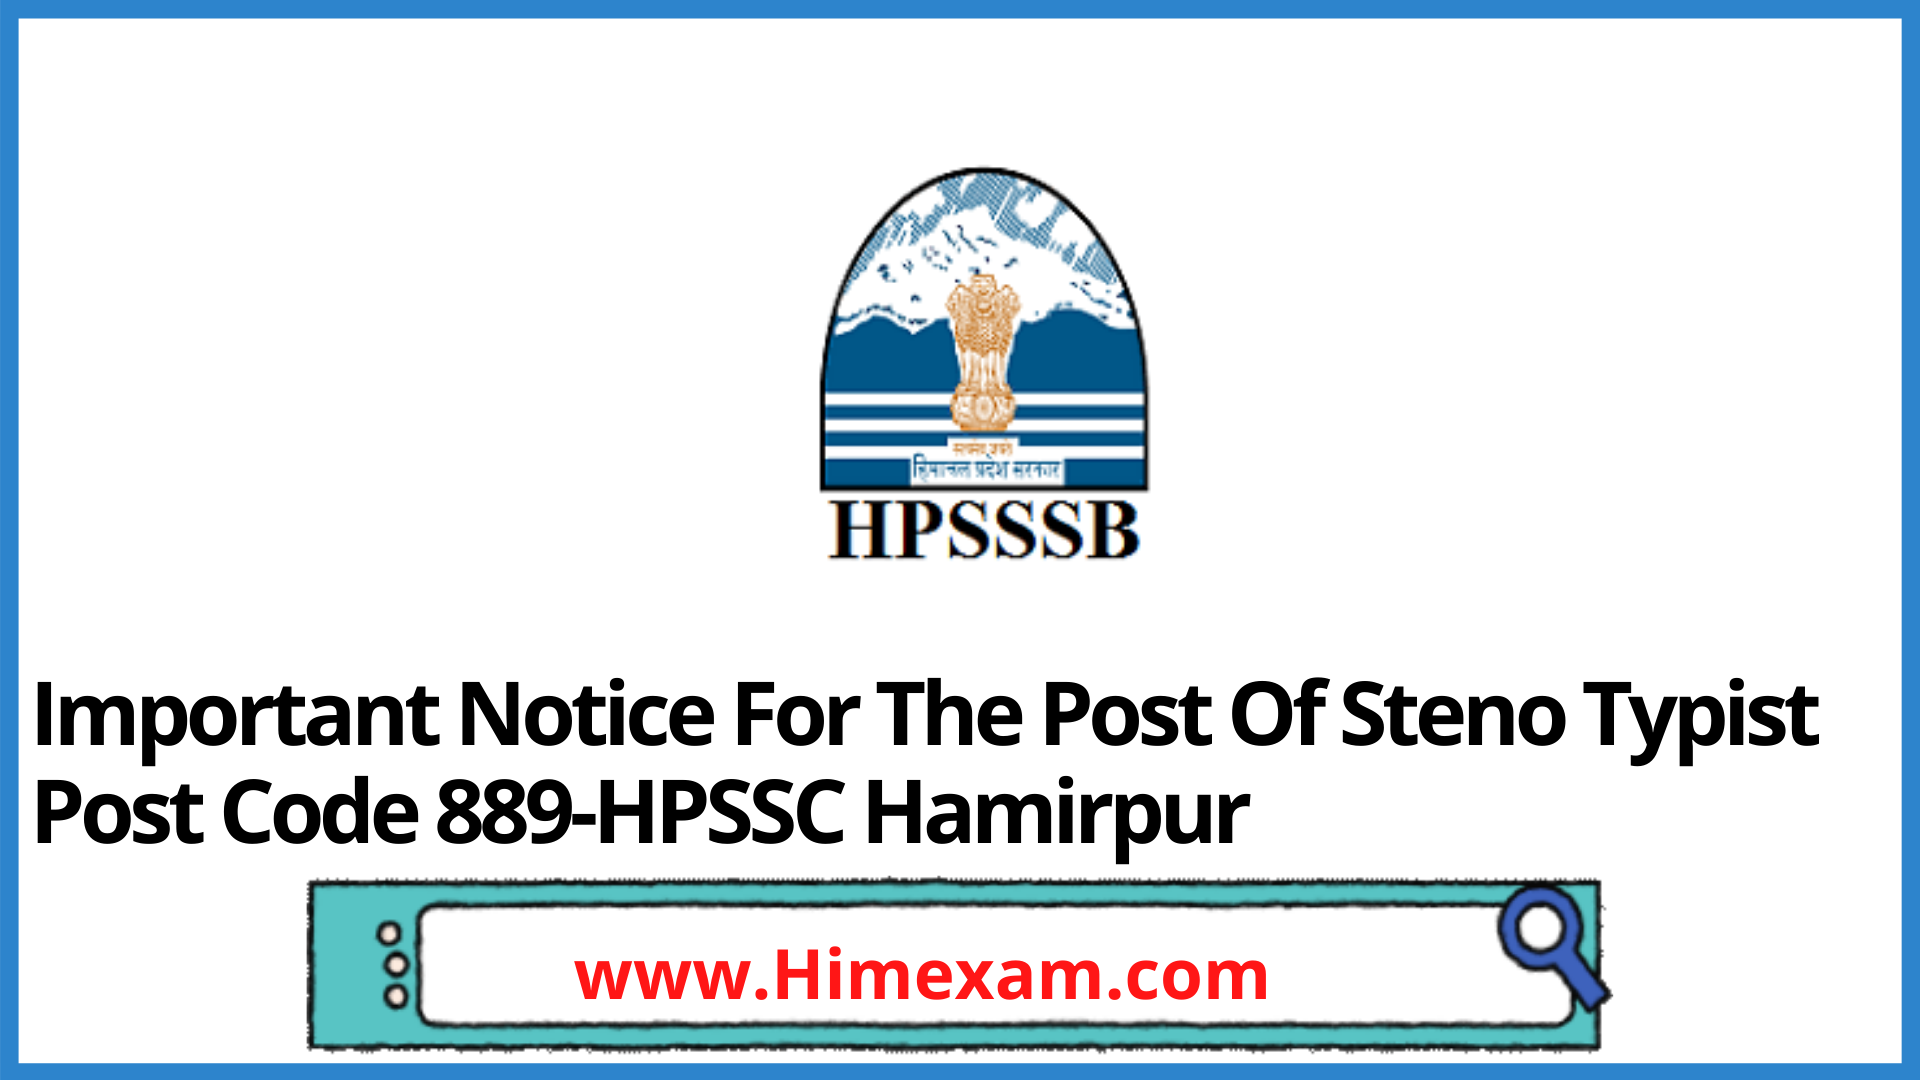 Important Notice For The Post Of Steno Typist Post Code 889-HPSSC Hamirpur